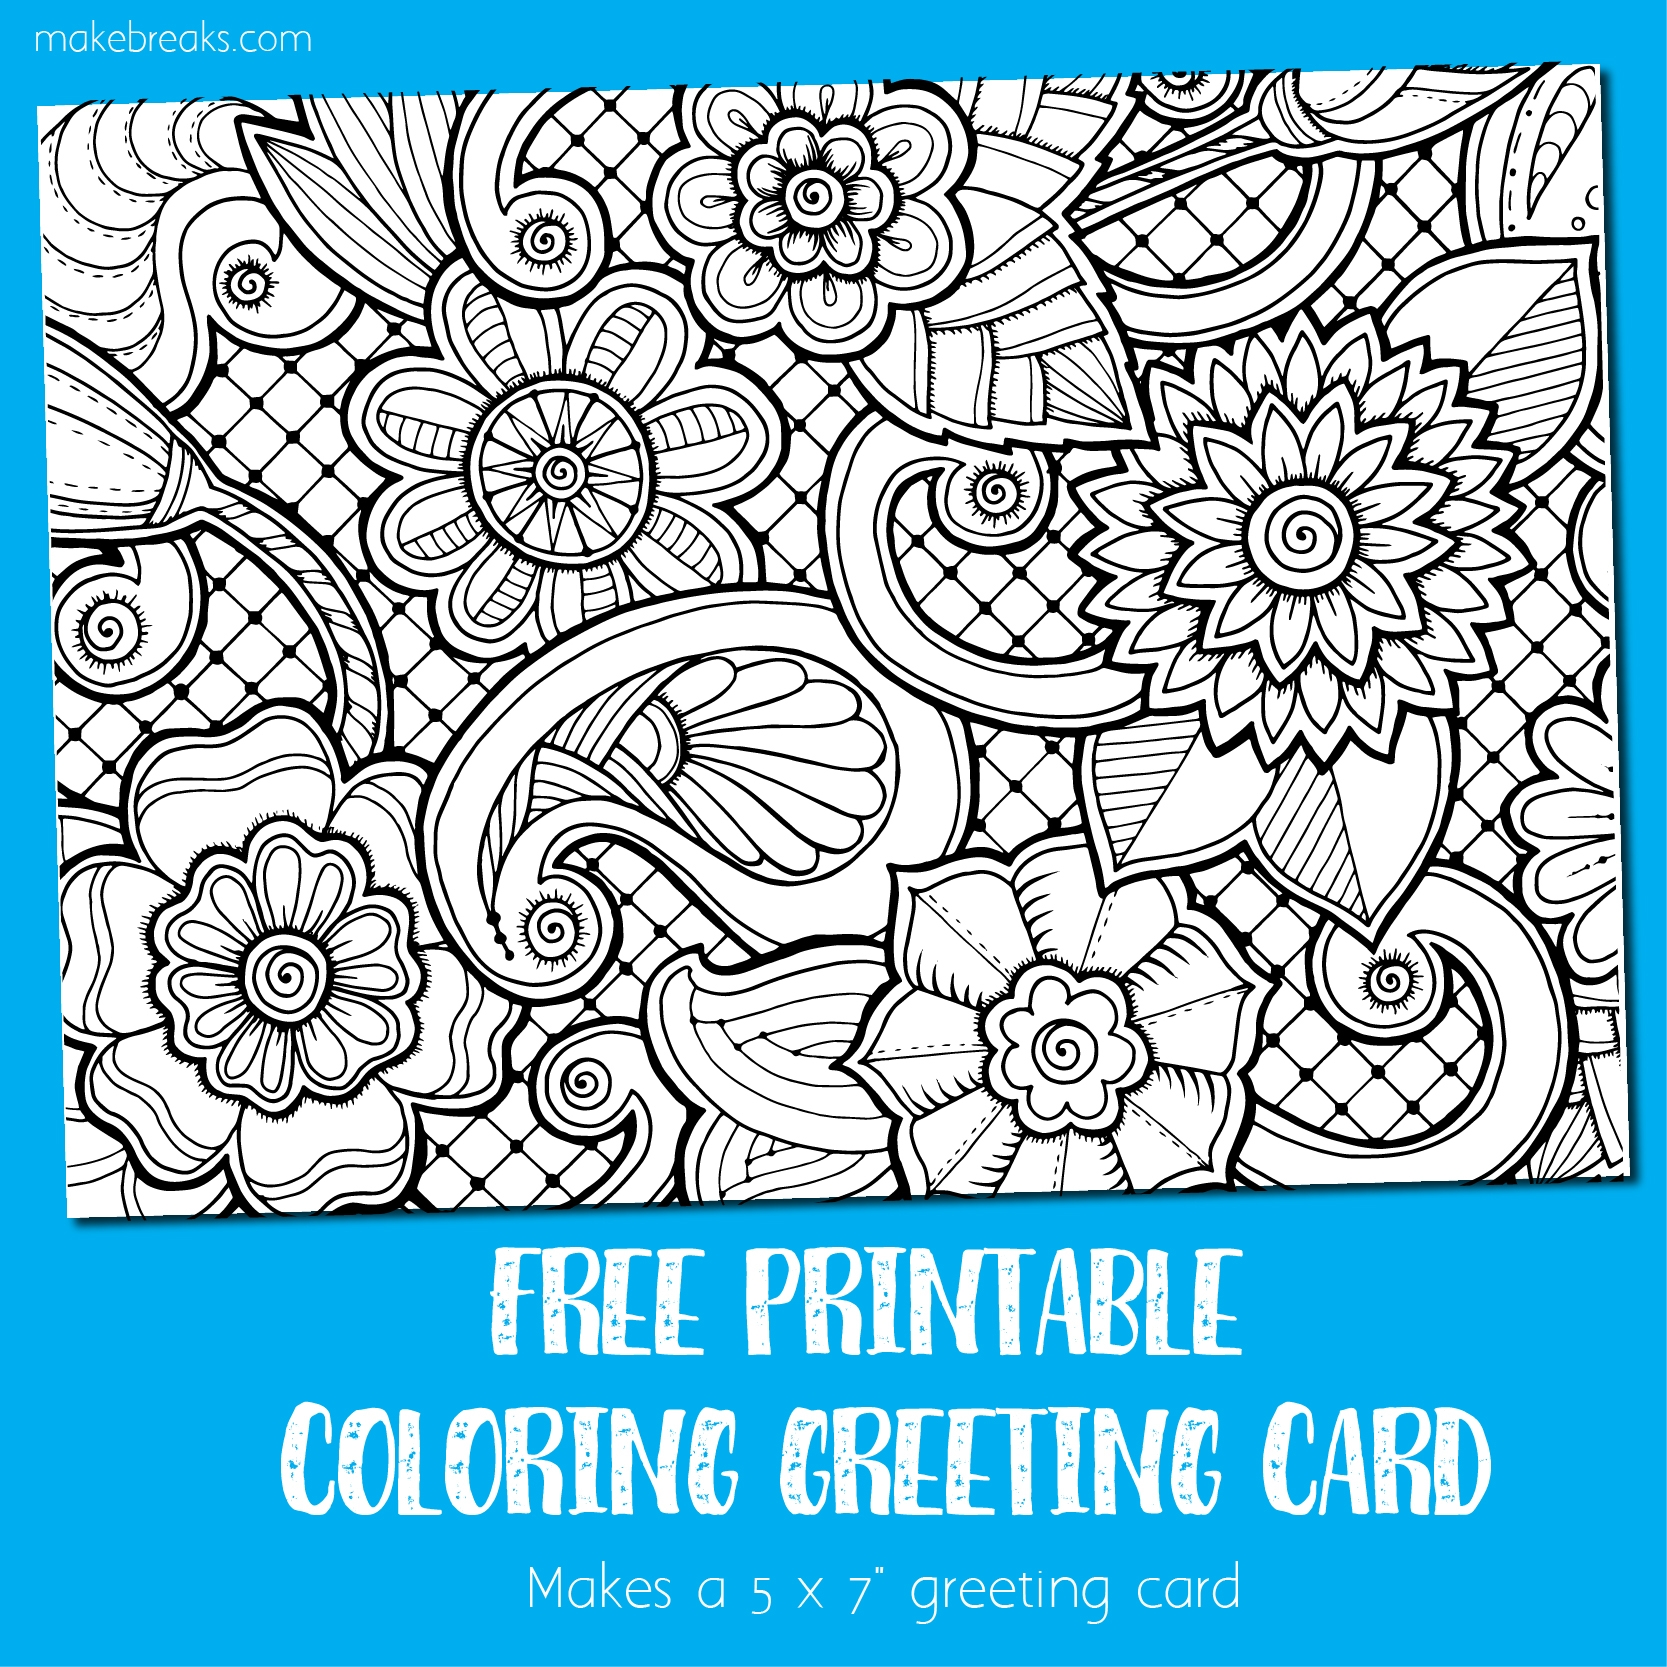 free printable mothers day coloring pages - coloringcard1